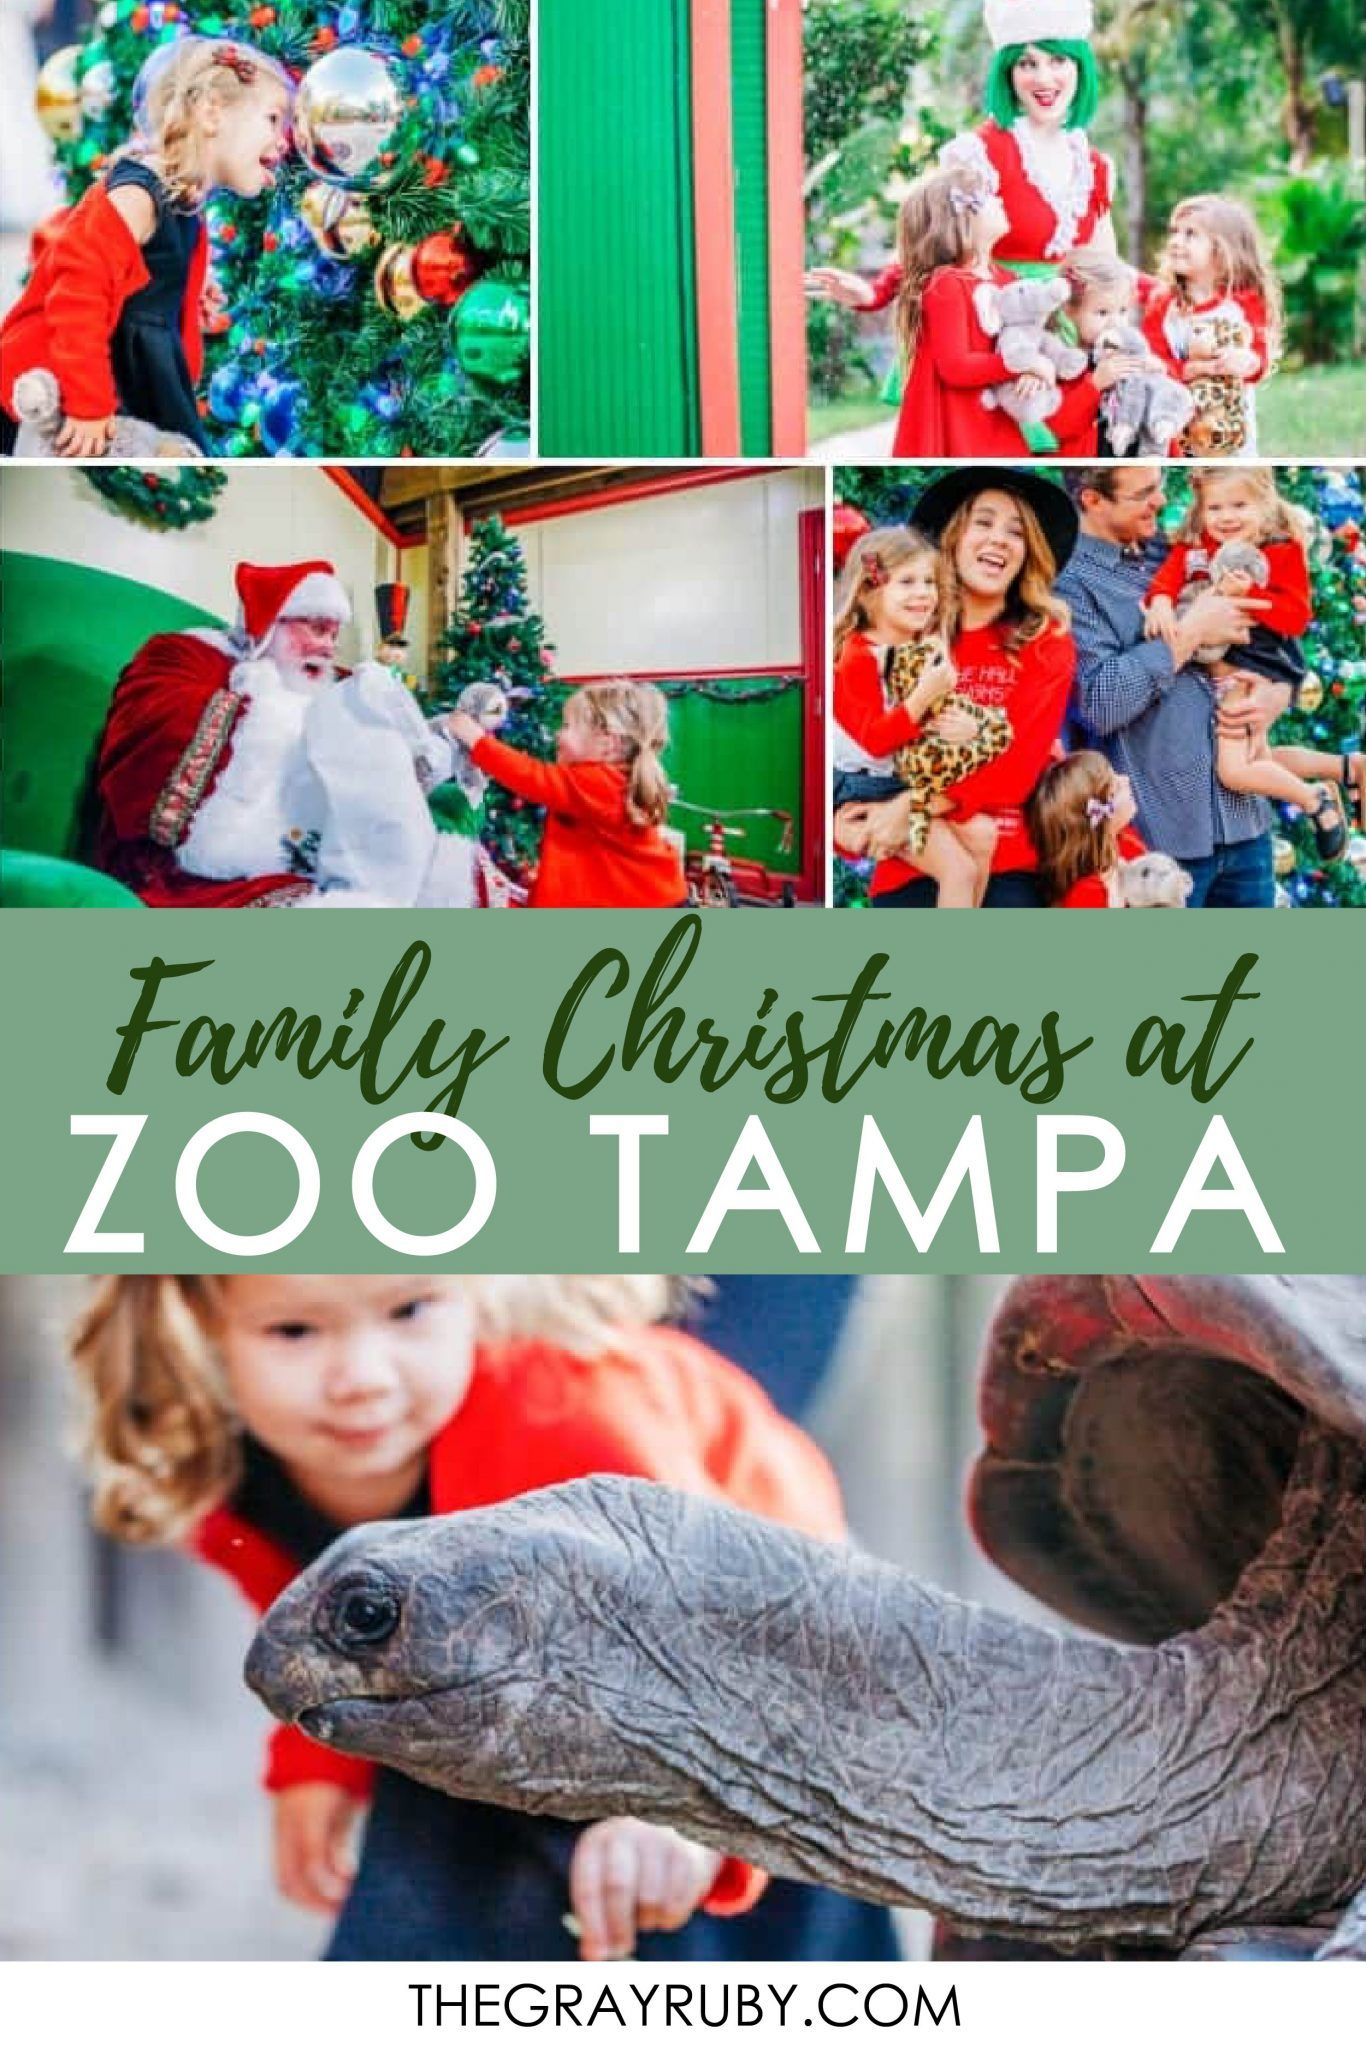 Christmas Events In Tampa Bay 2020 Pin by Siera Duiser   Spreading Magic on Florida in 2020